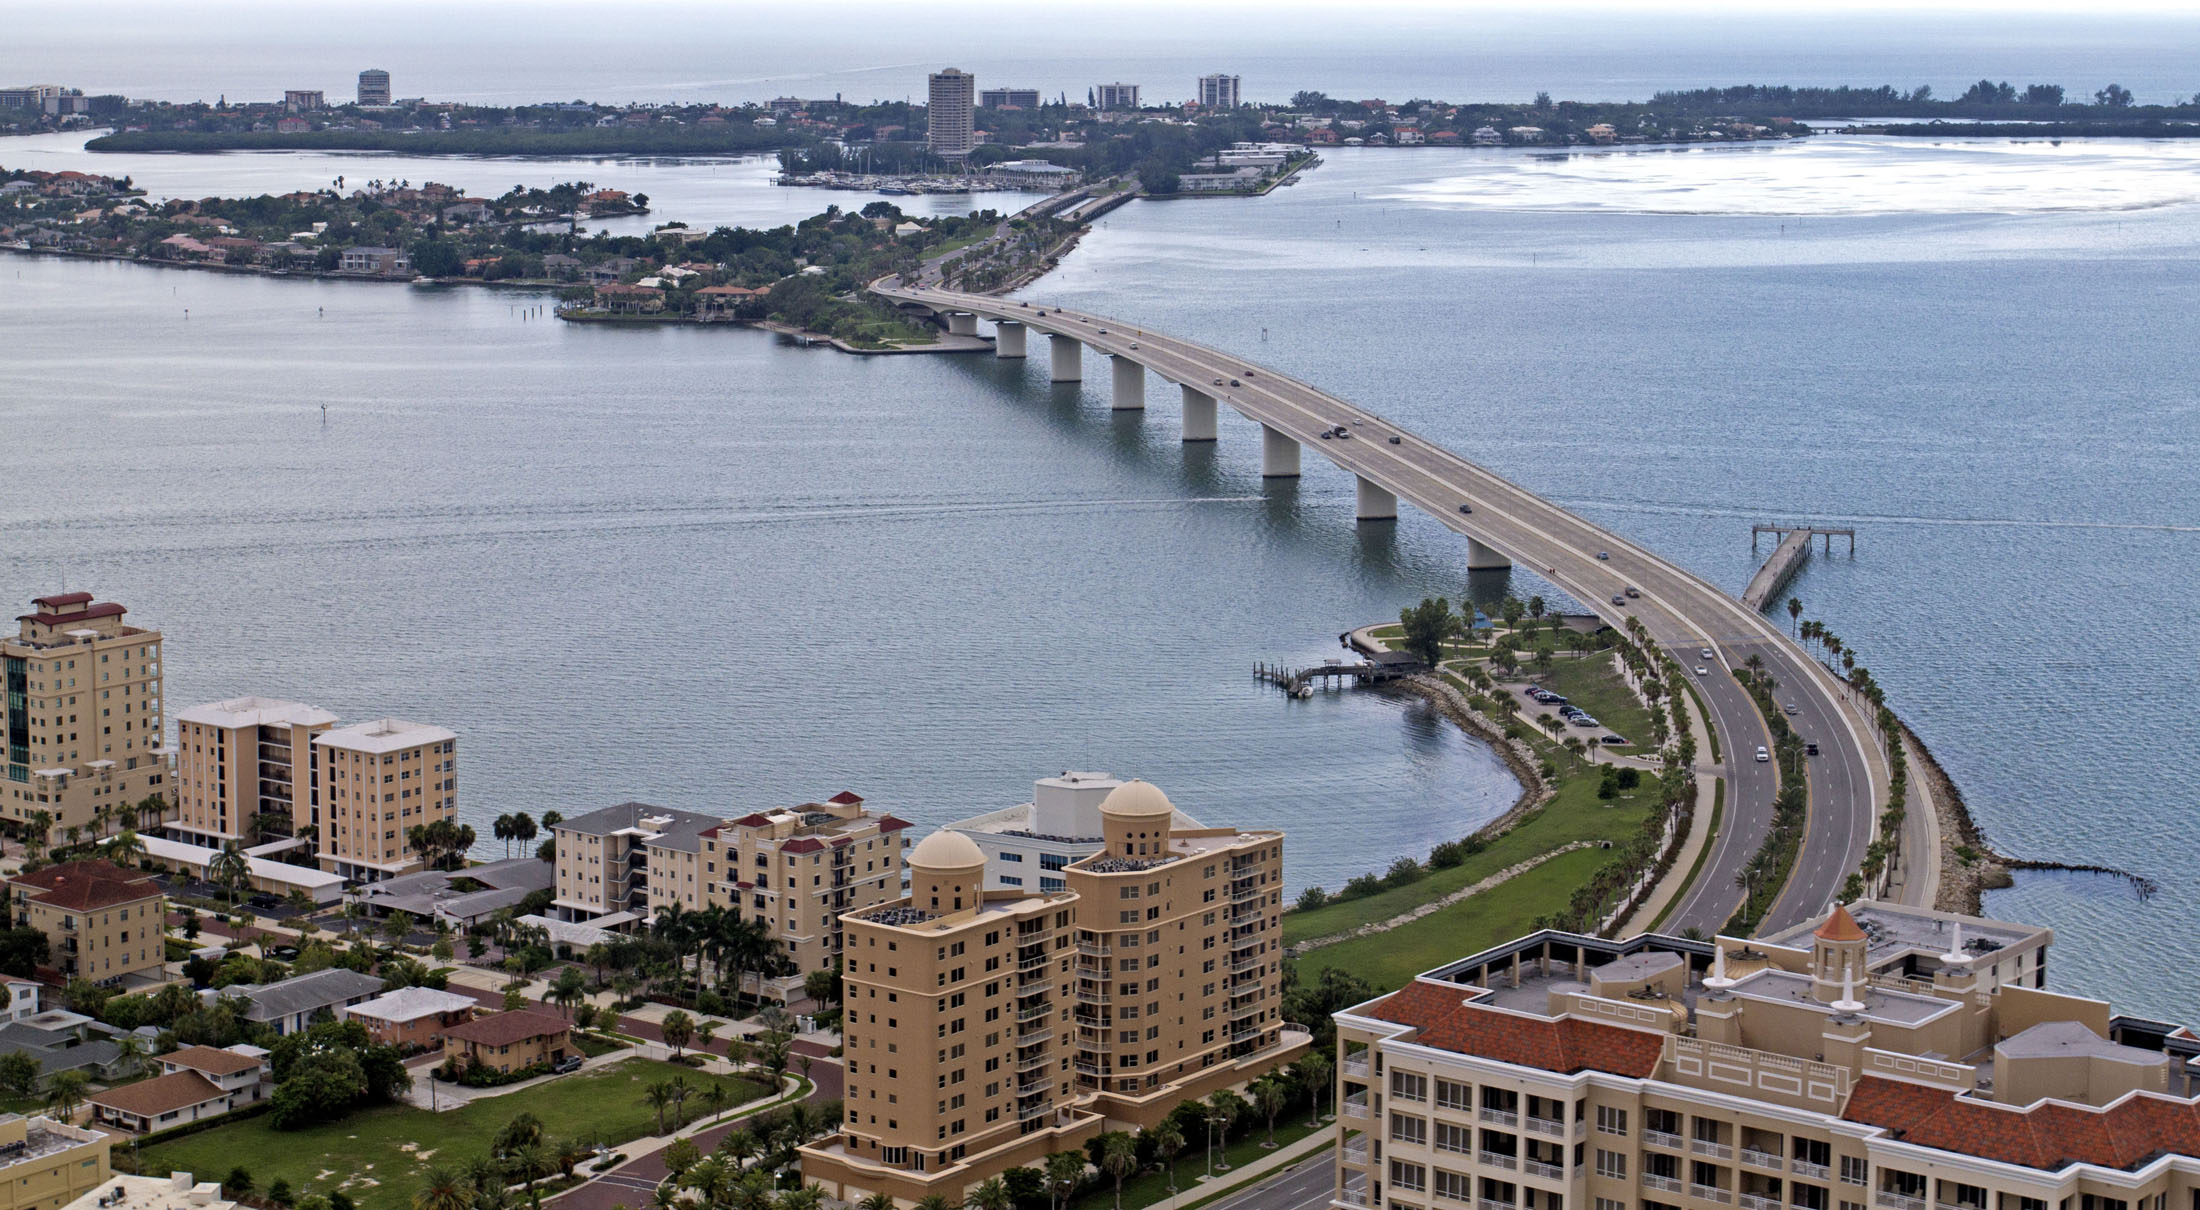 The west coast of Florida has a thriving group of young professionals who make their home in Sarasota.